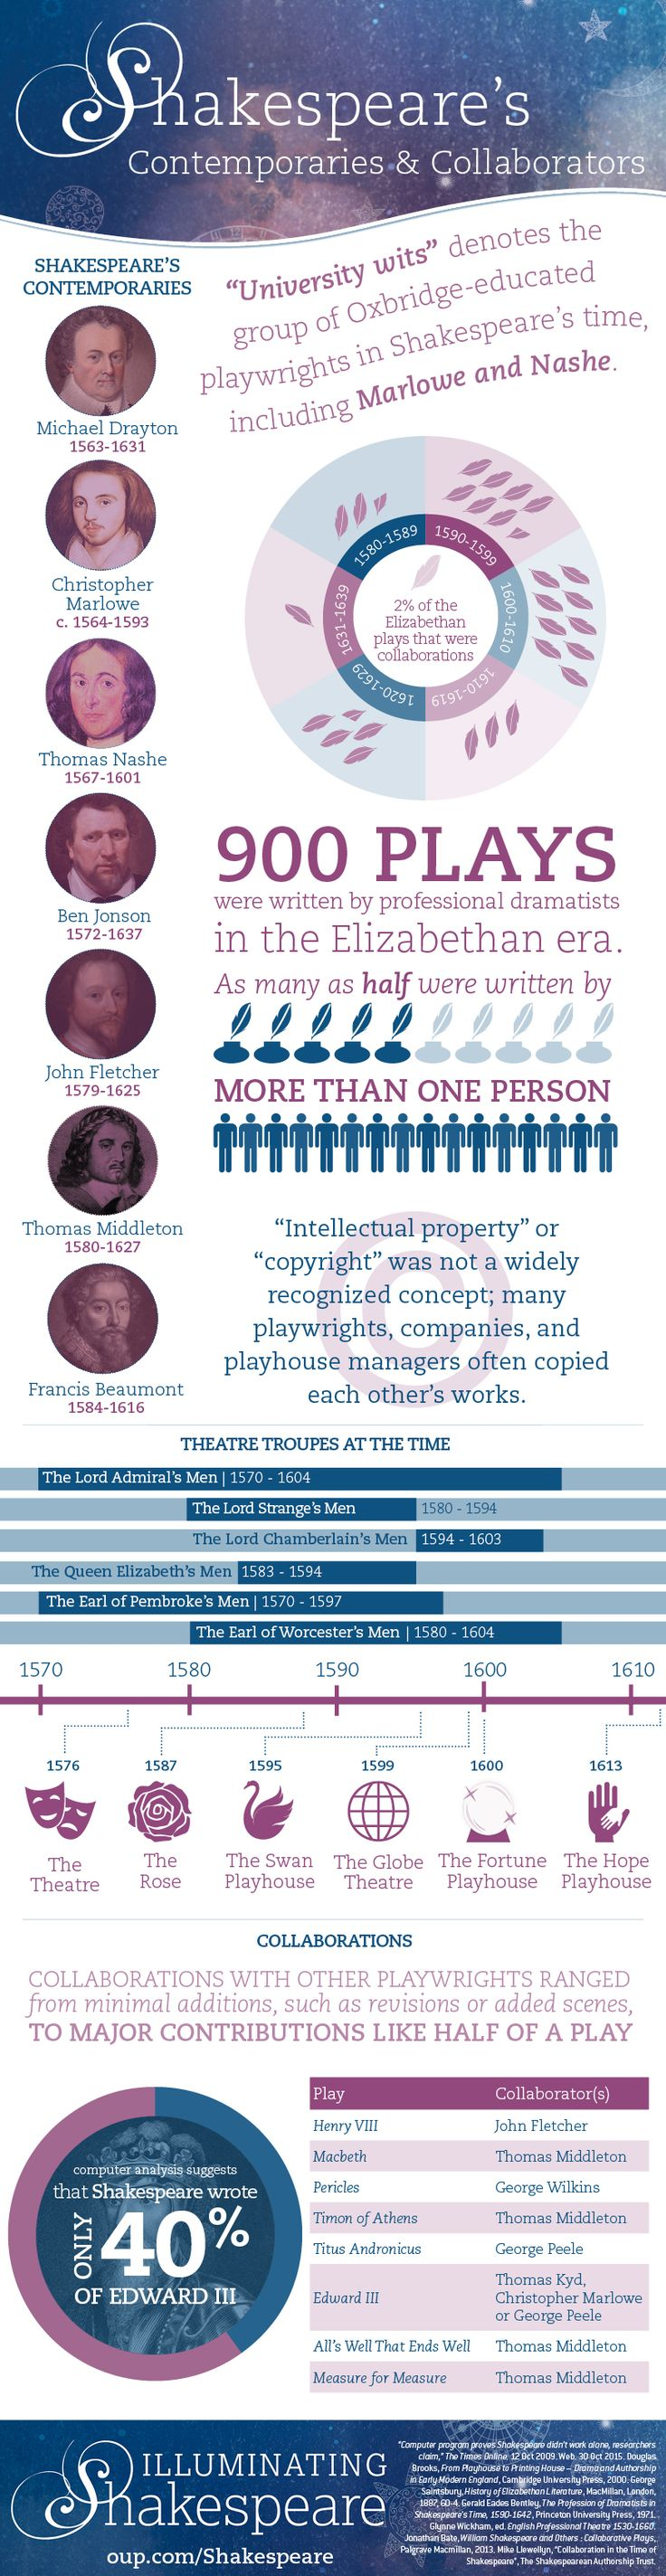 Shakespeare's contemporaries and collaborators [infographic]